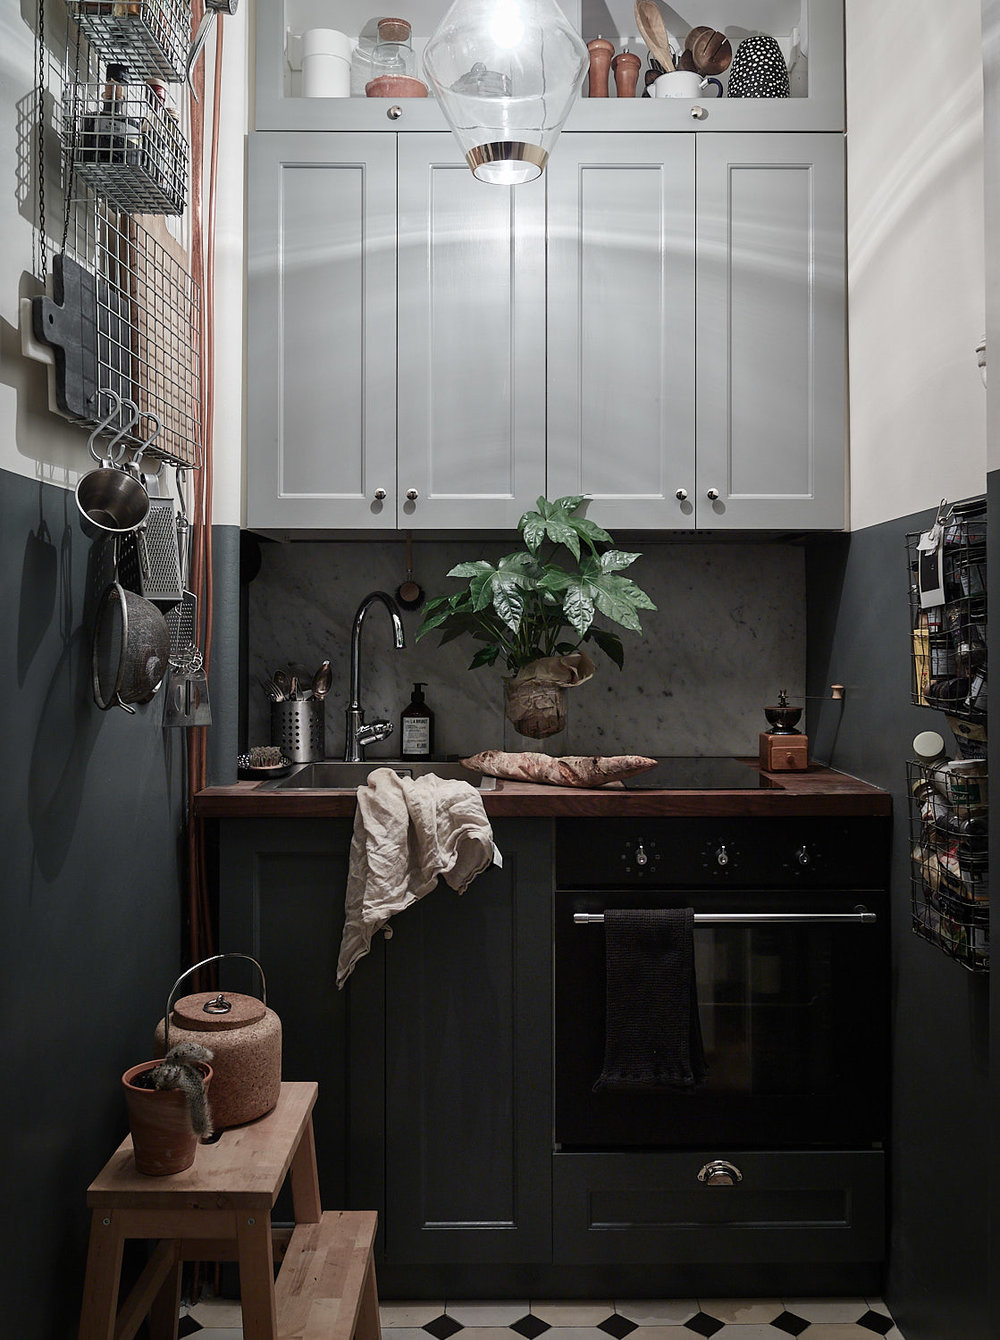 Bonus:: Metal Shelves + A Magazine Holder: Industrial & Industrious in the Kitchen